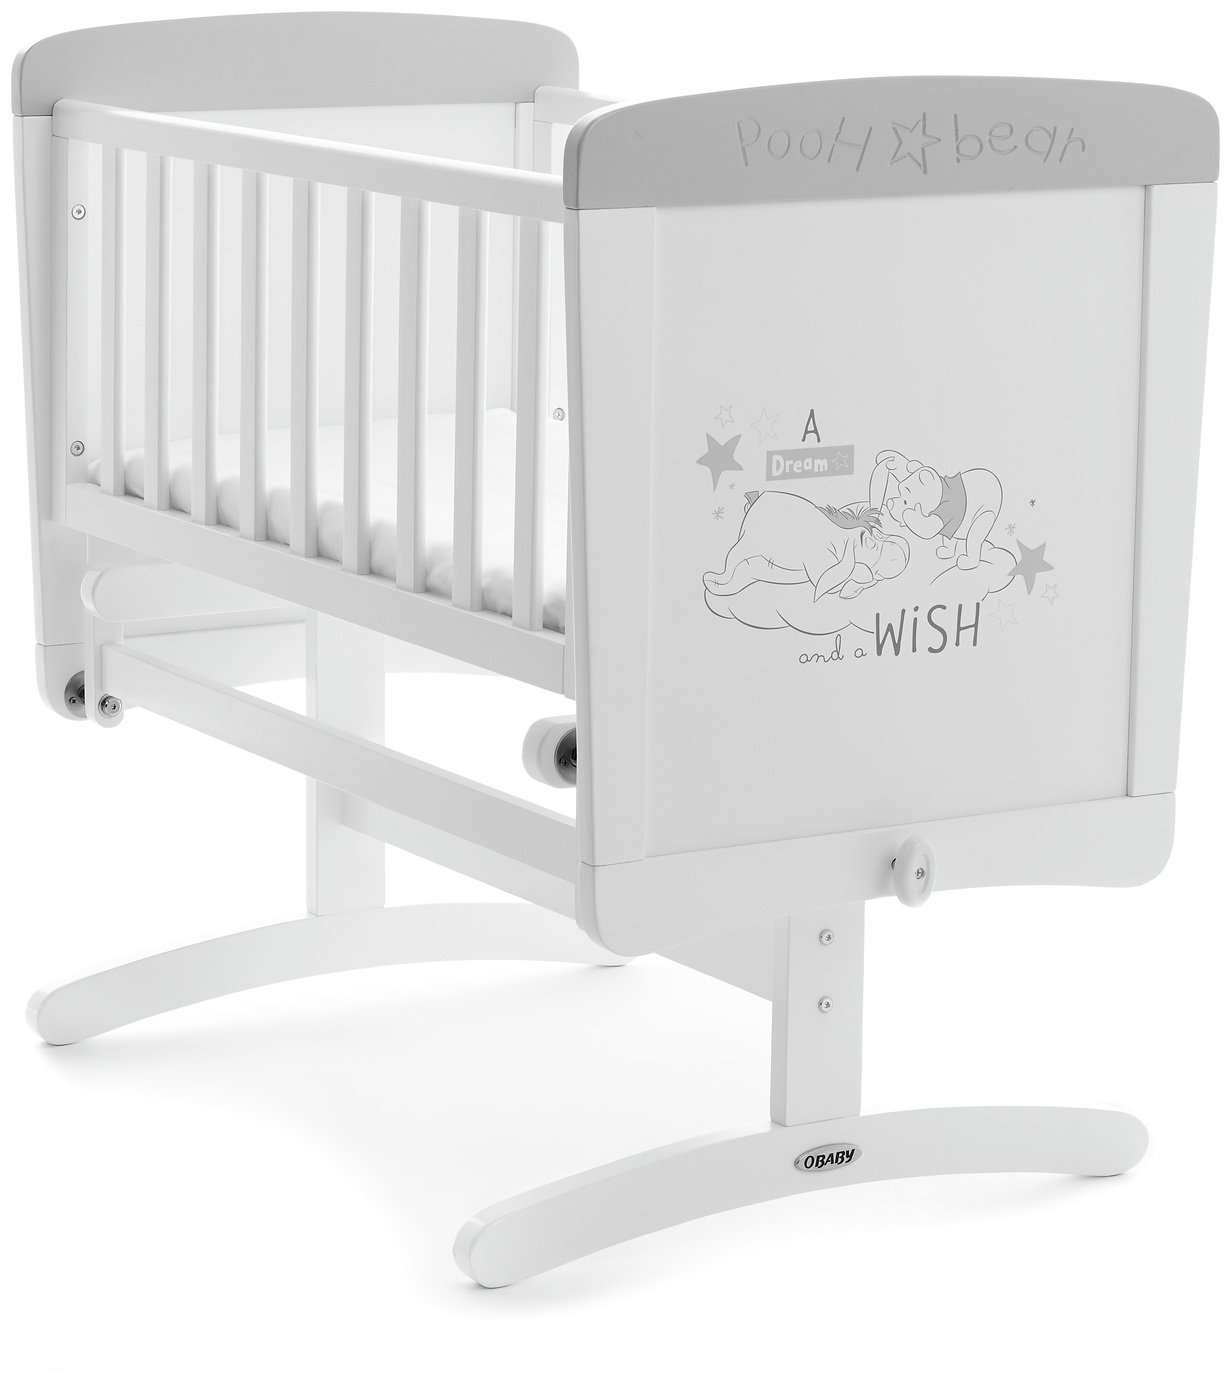 Disney Winnie the Pooh Gliding Crib Bundle - Dreams & Wishes